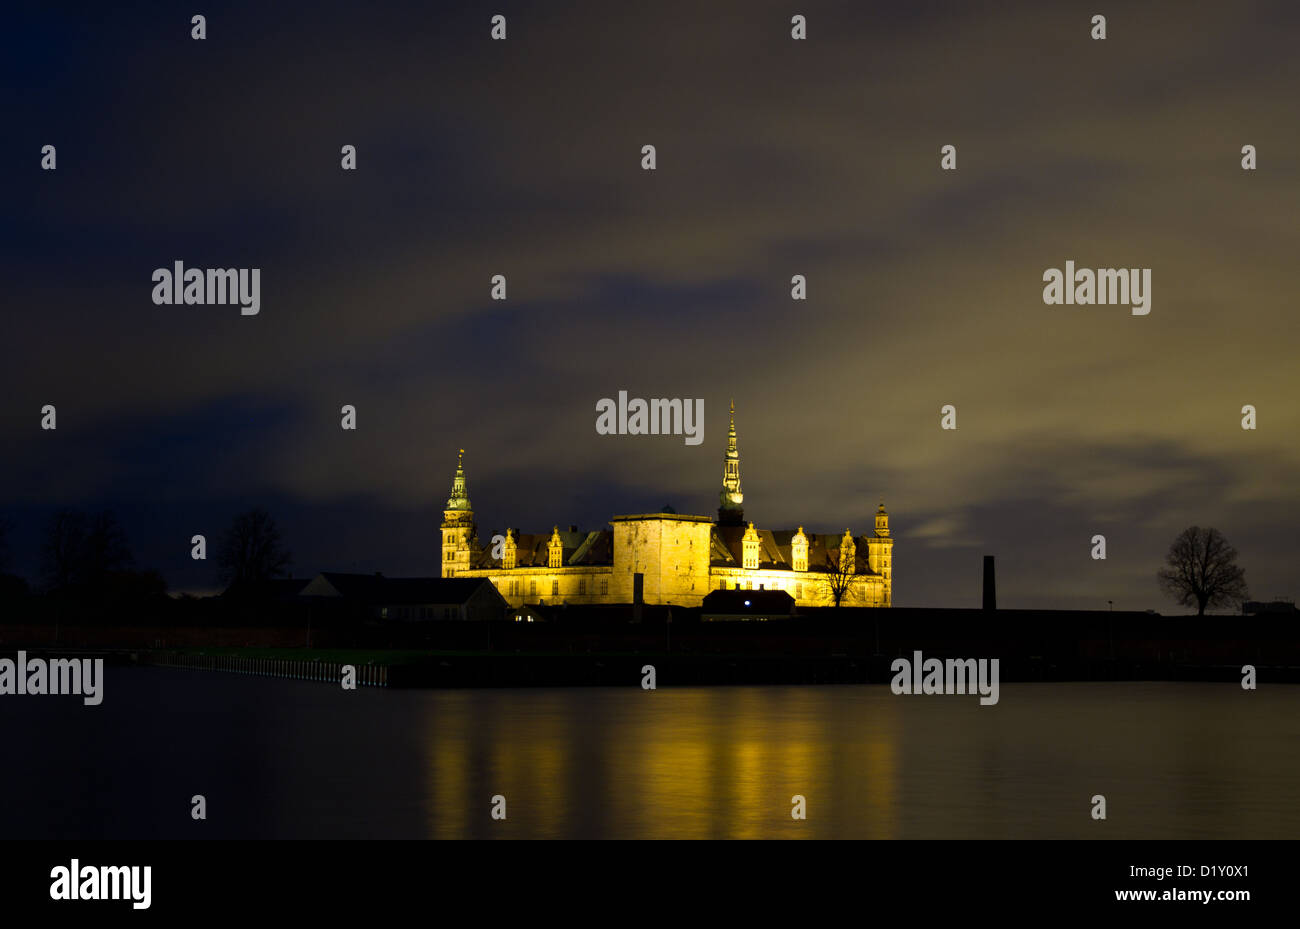 Elsinore Kronborg castle by night. Kronborg is the place of Tragedy of Hamlet, Prince of Denmark  of William Shakespeare - Stock Image